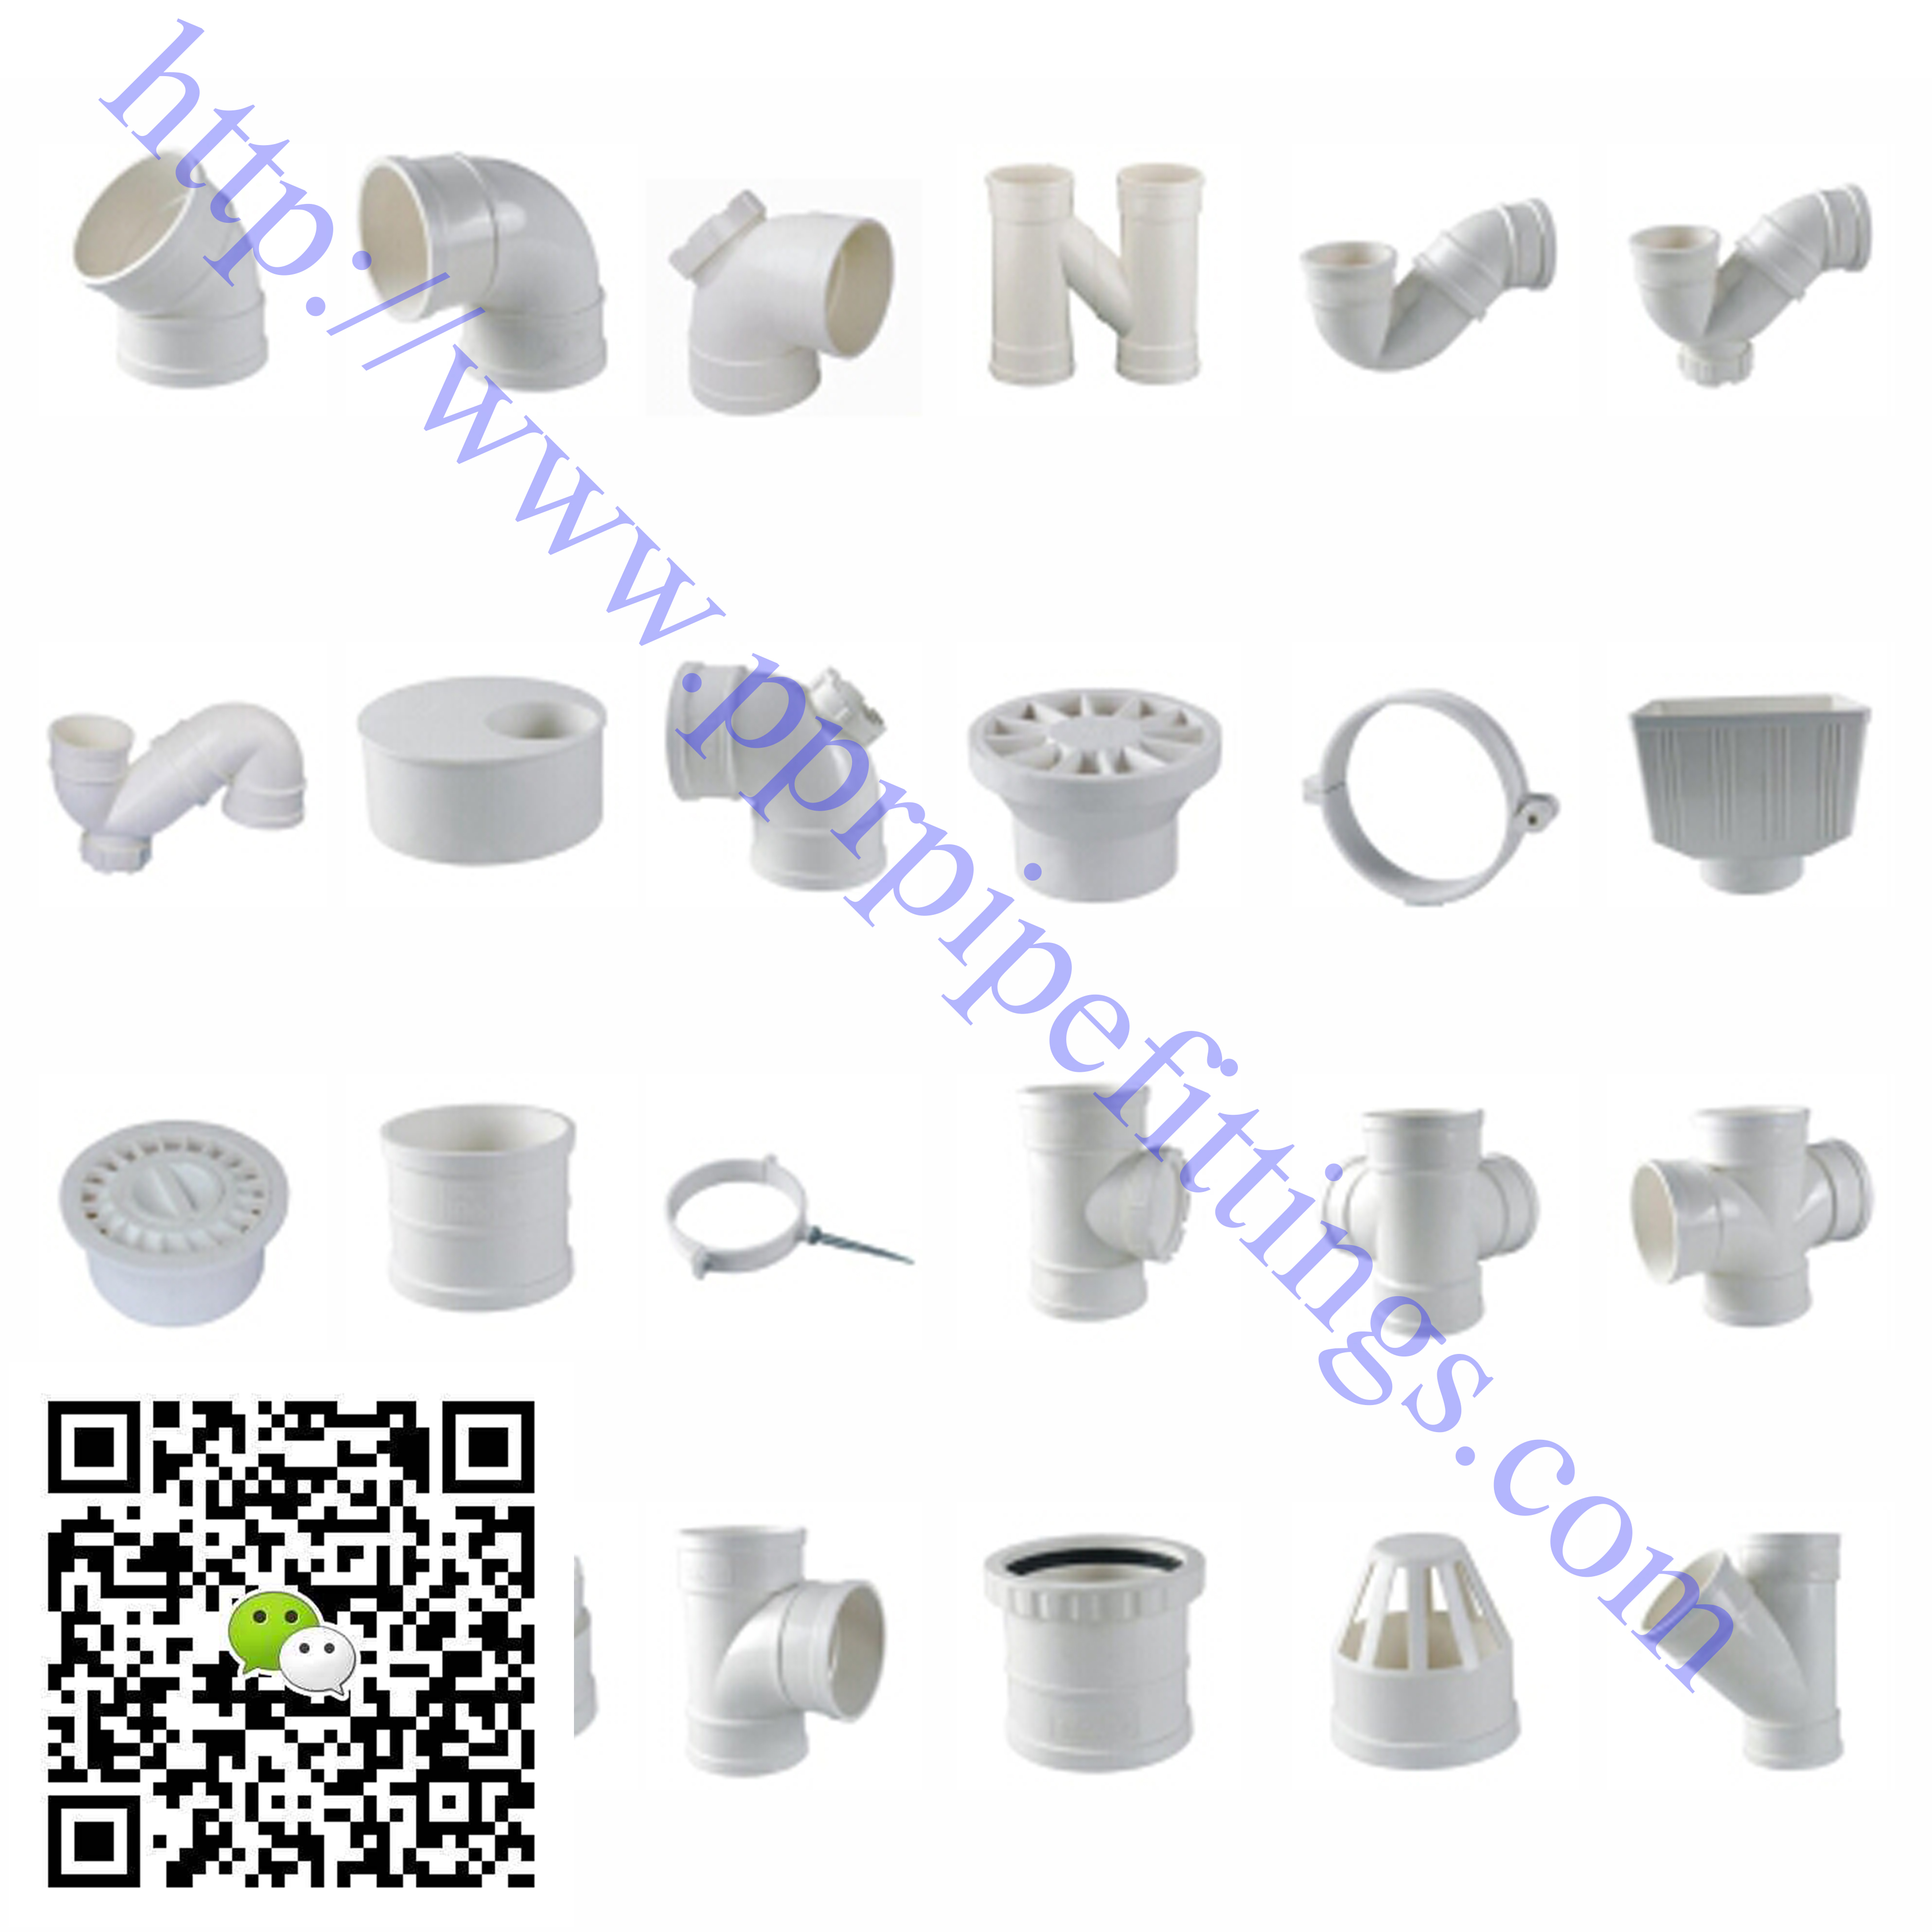 PVC-U pipe fittings